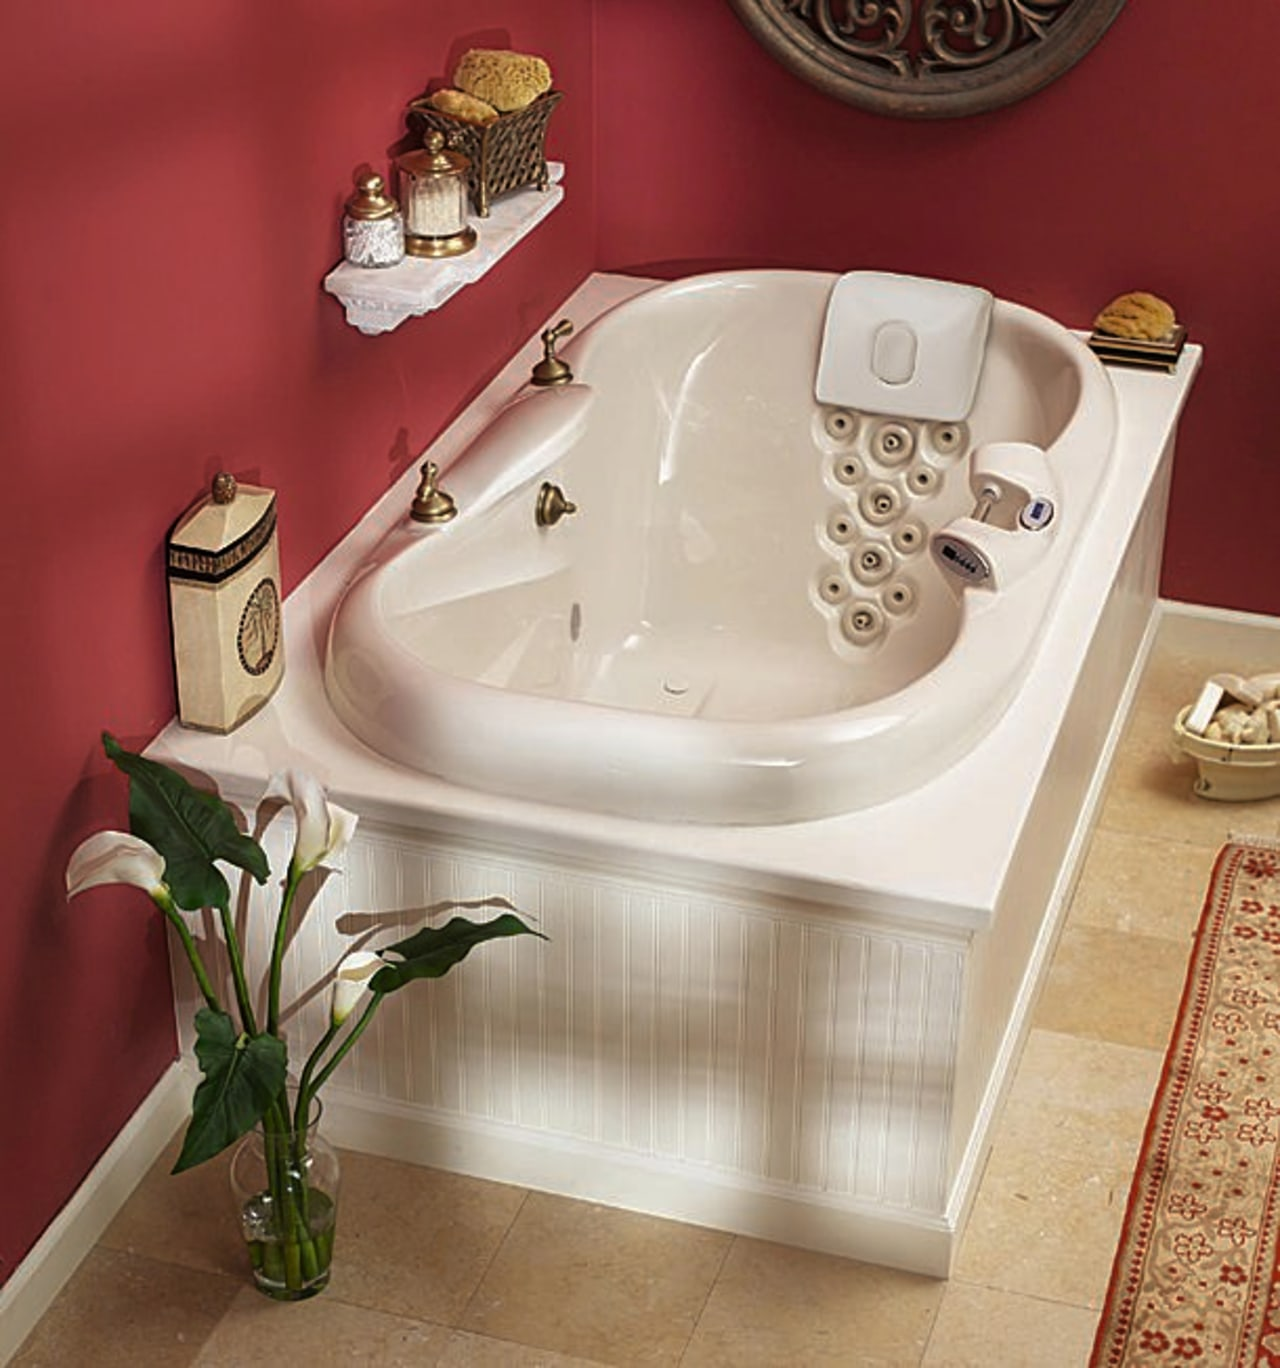 A whirlpool bath bathroom, bathroom sink, bathtub, ceramic, floor, plumbing fixture, product design, sink, tap, toilet seat, red, gray